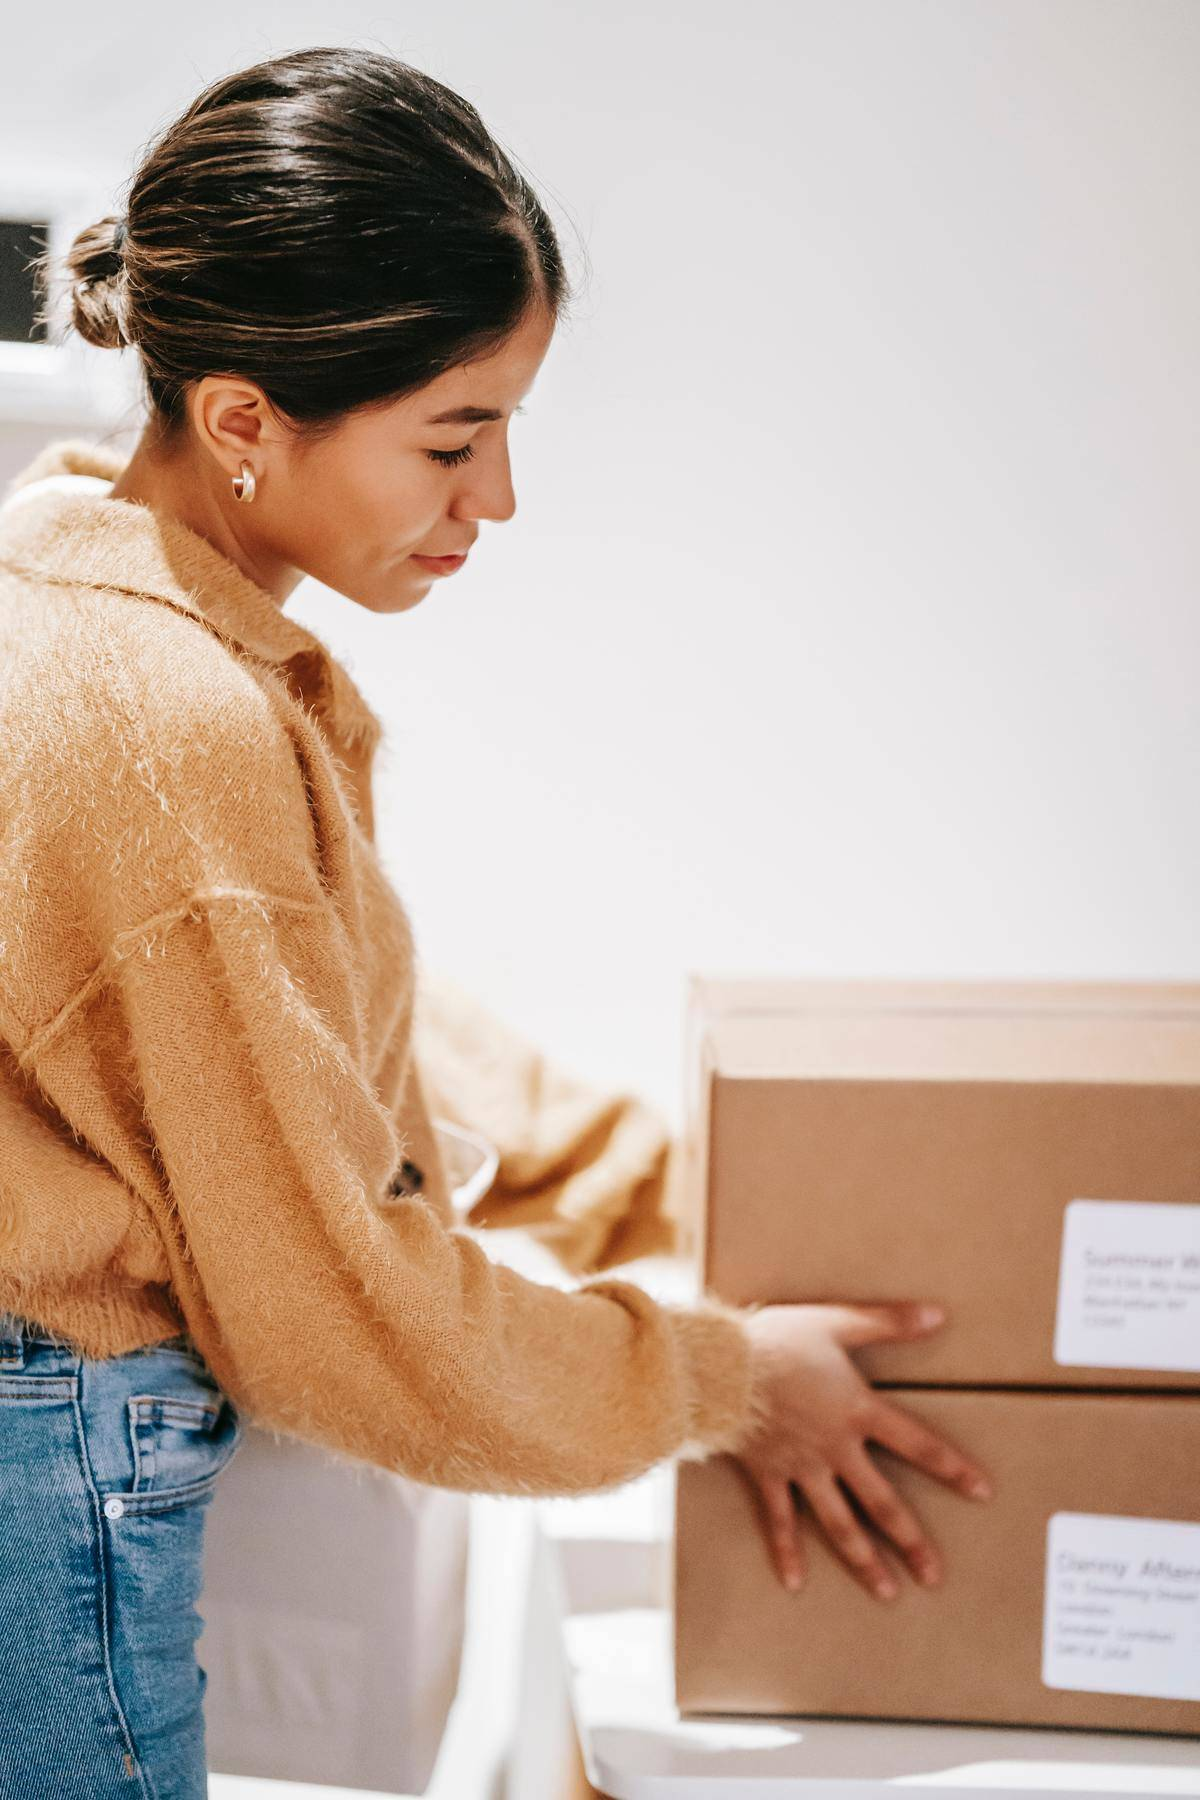 Woman looks at boxes smiling softly